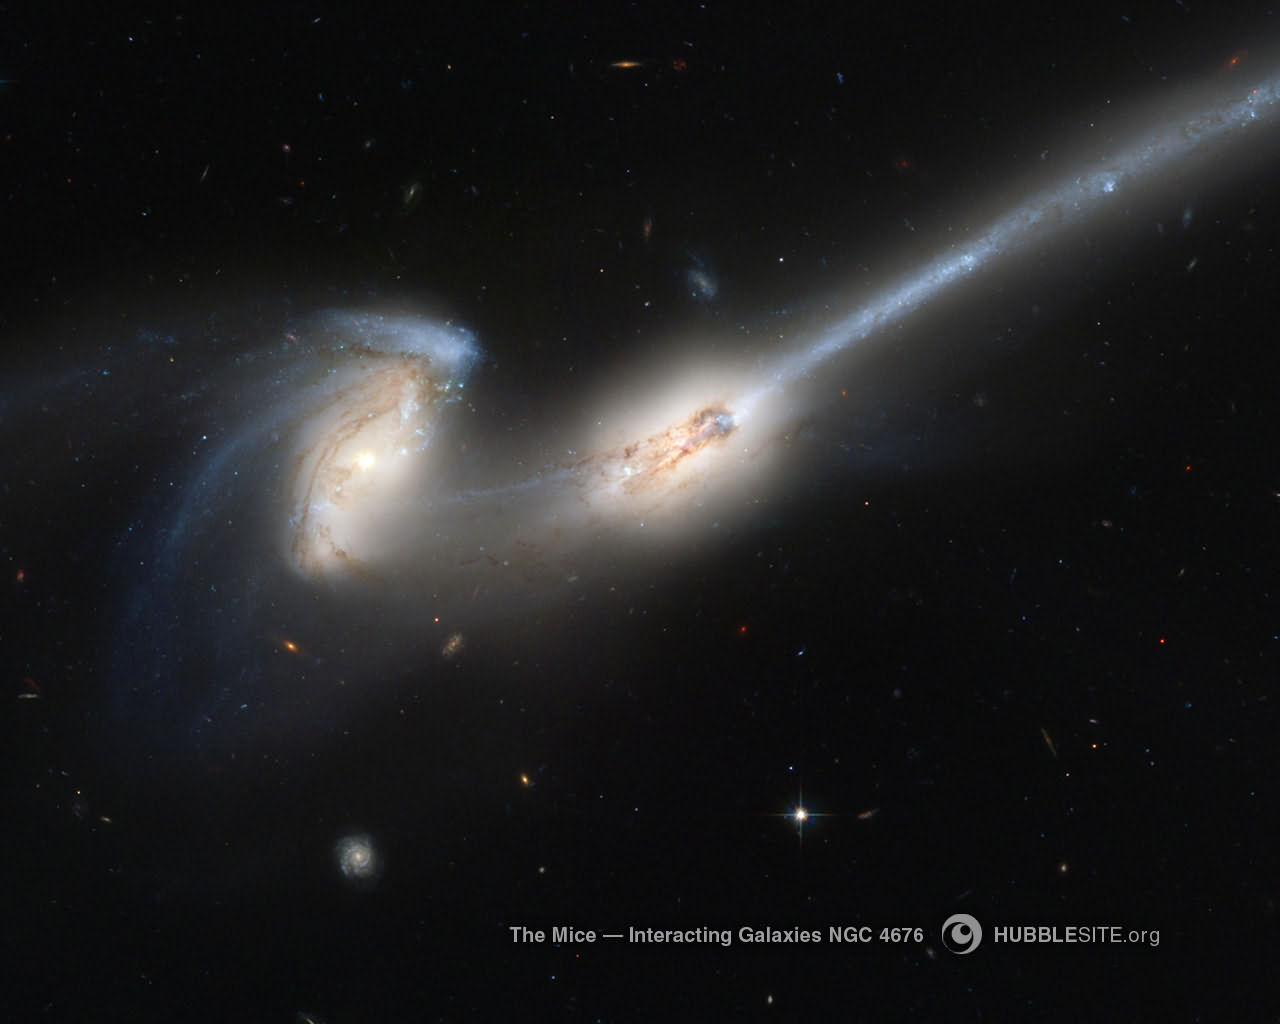 Desktop wallpaper for The Mice Interacting Galaxie HUBBLE 1280x1024